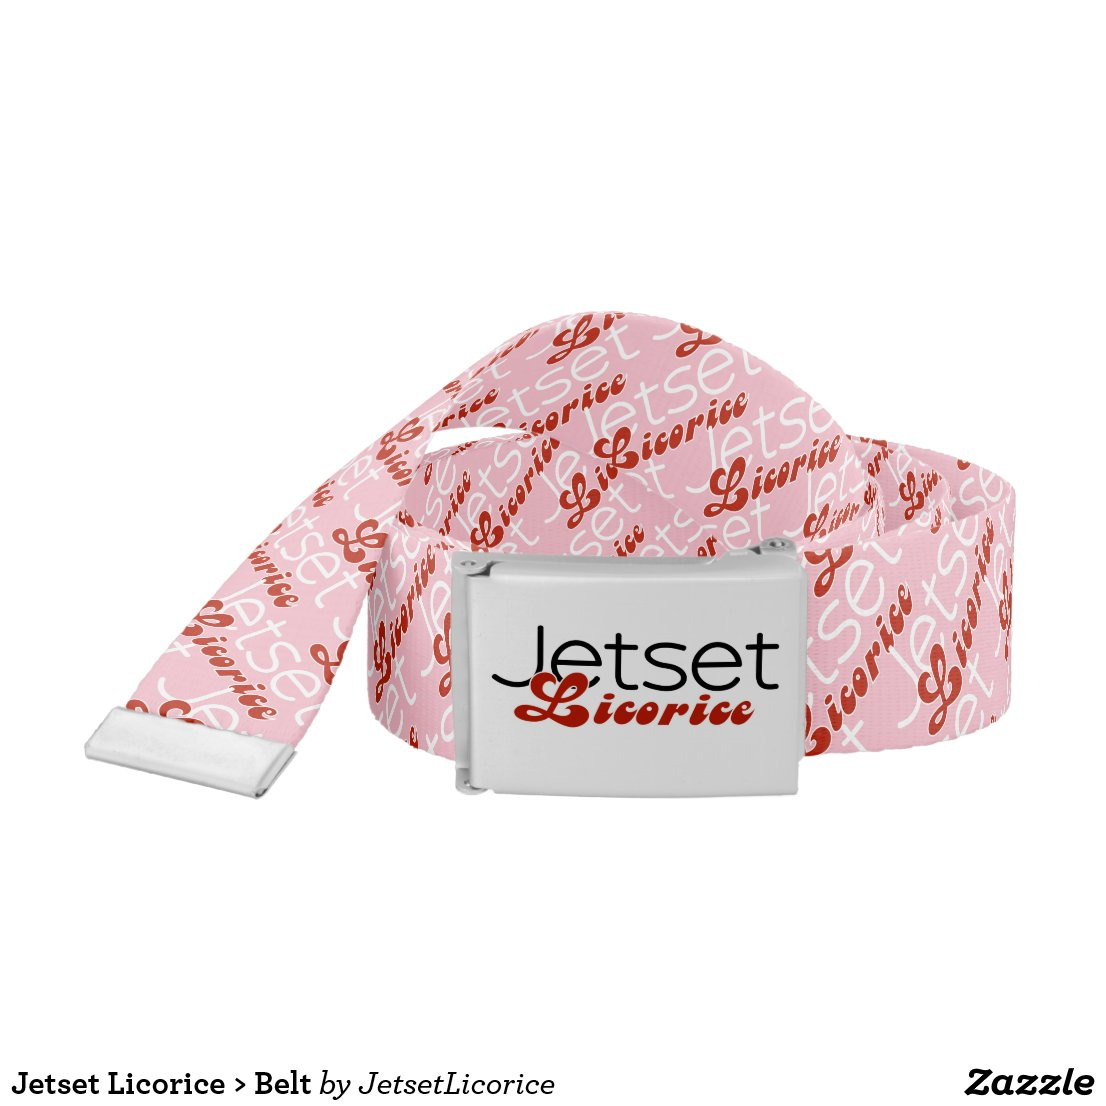 Jetset Licorice > Belt